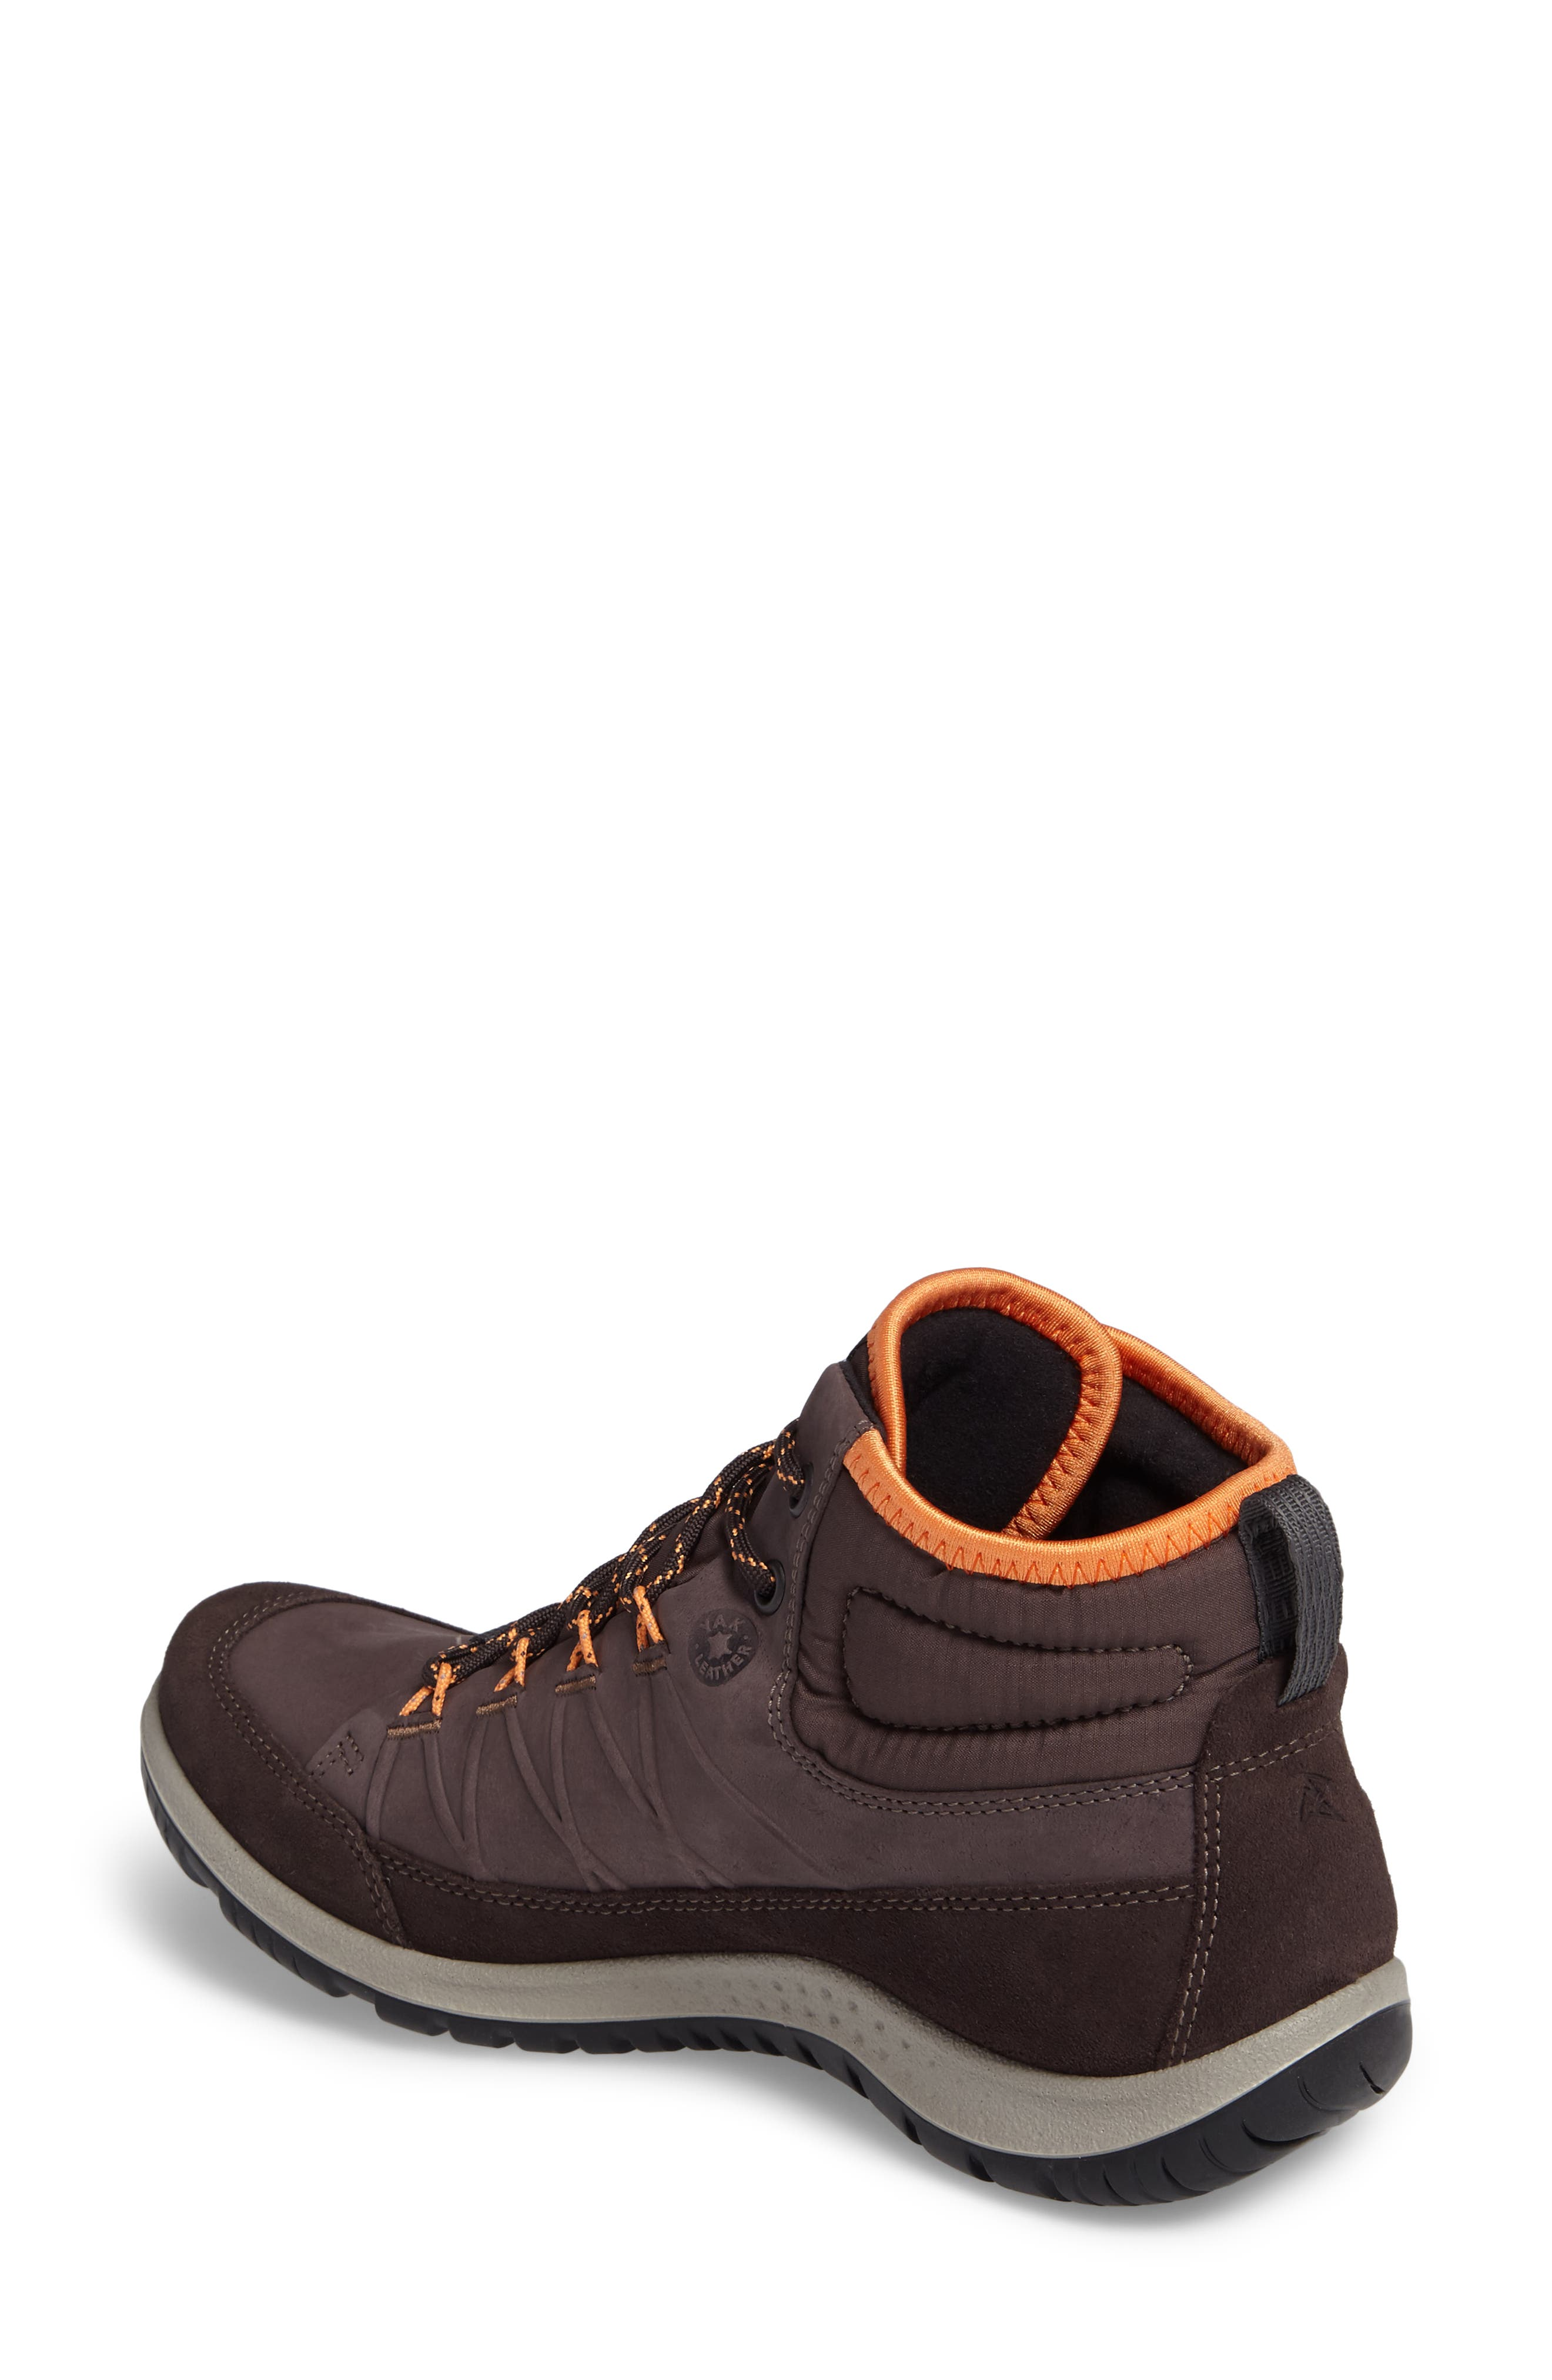 'Aspina GTX' Waterproof High Top Shoe,                             Alternate thumbnail 2, color,                             SHALE LEATHER